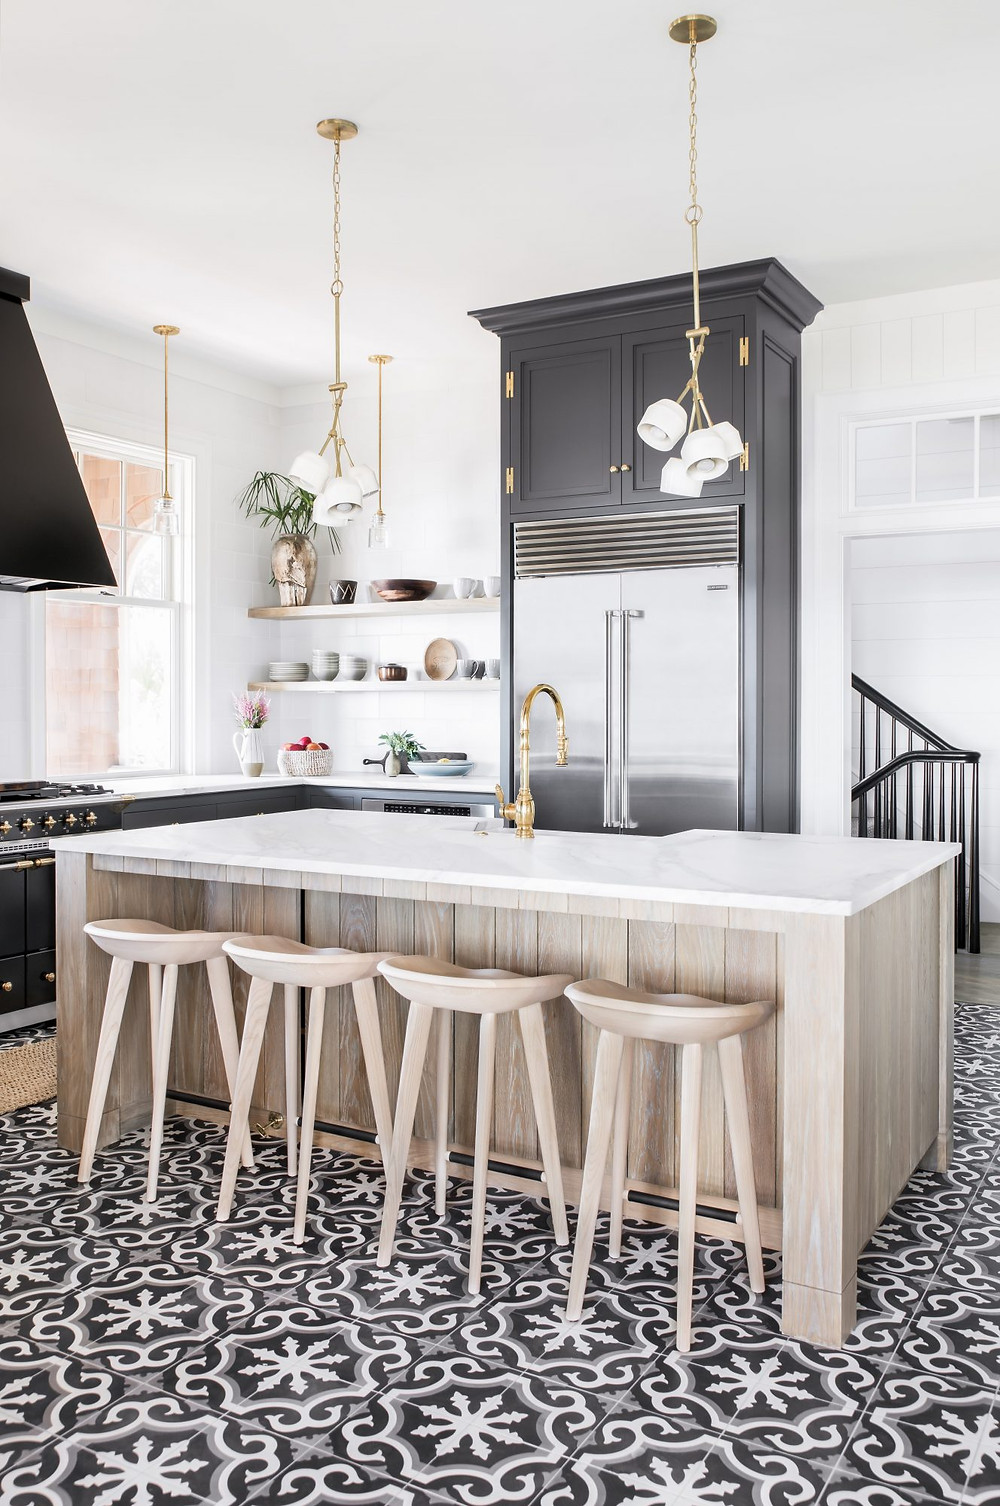 Charming bright and airy Modern Farmhouse Kitchen. Brass Hardware. Timber and Marble Kitchen Island. Black Cupboards. Spanish Tile Floors. Open Shelving.